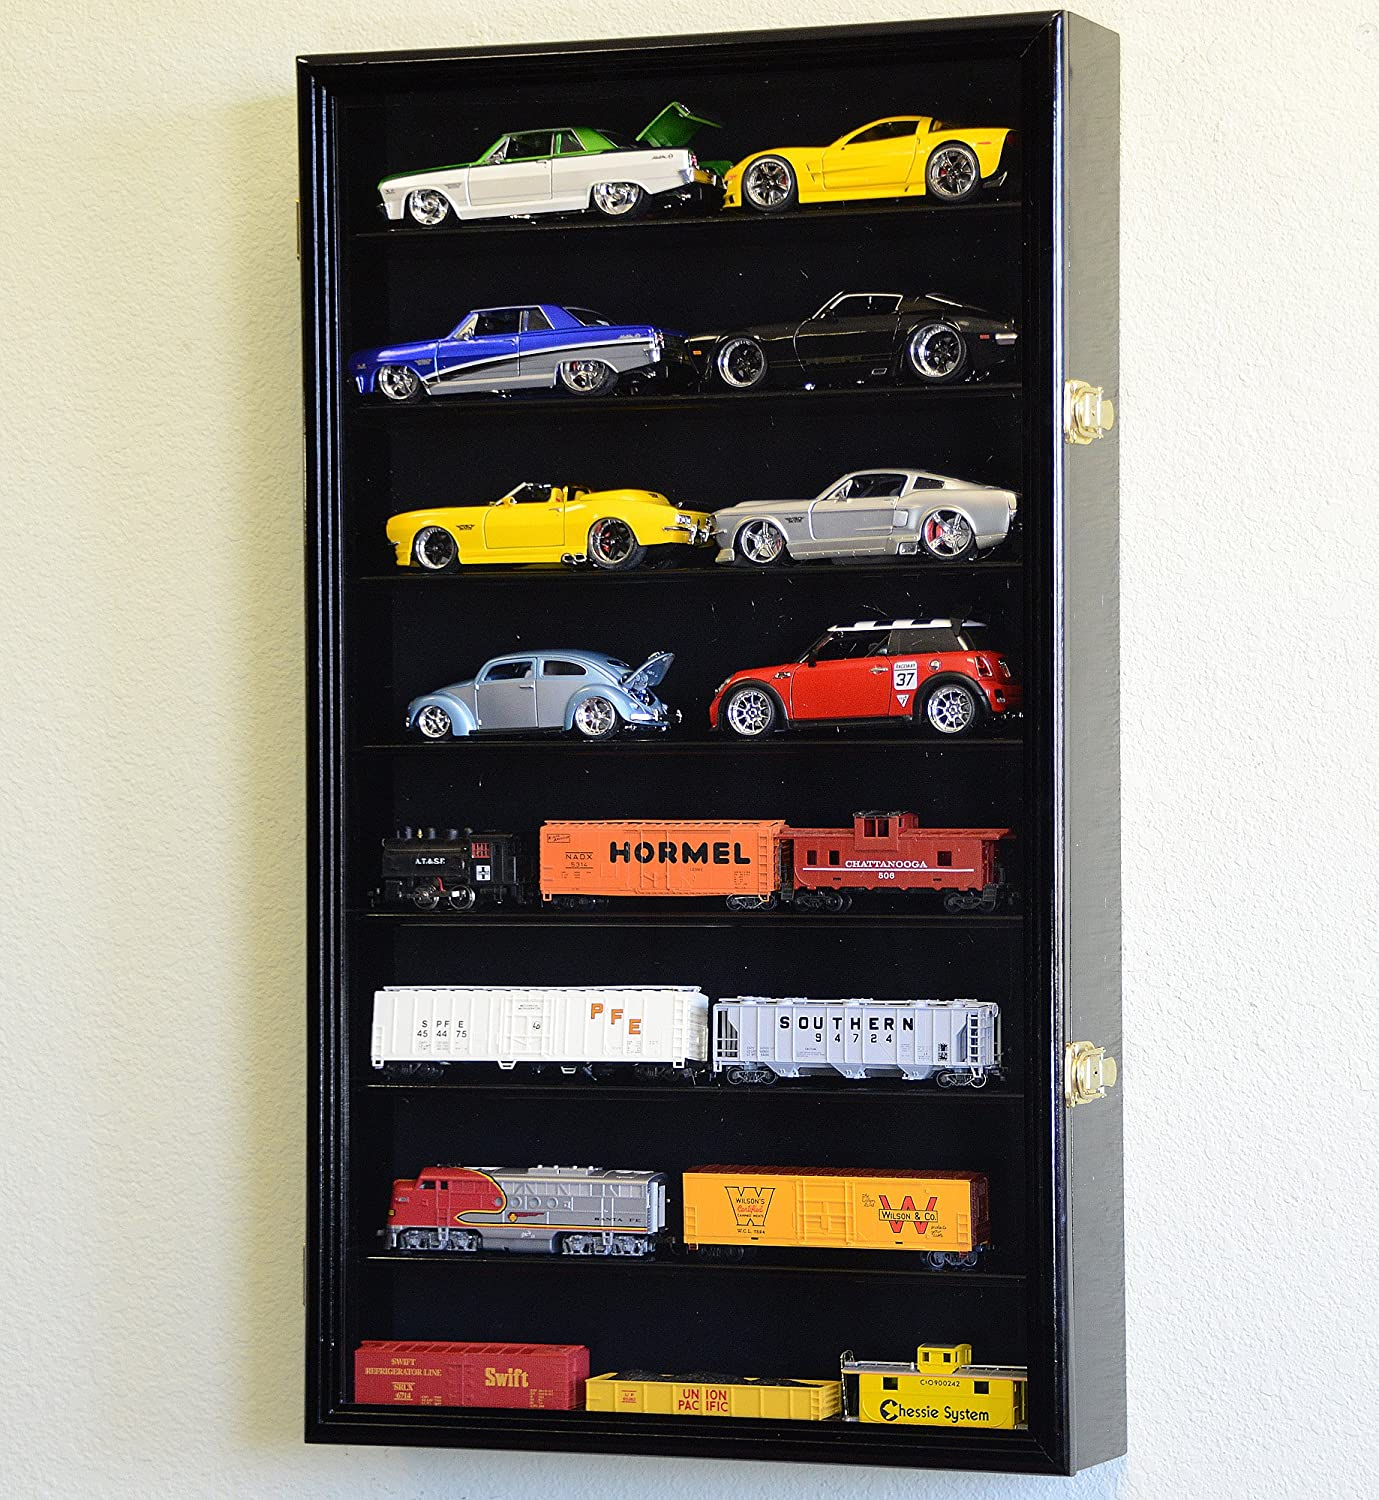 Large 124 Scale Diecast Model 16 Cars Display Case Cabinet Holder Holds 16 Cars 124 Cherry Finish